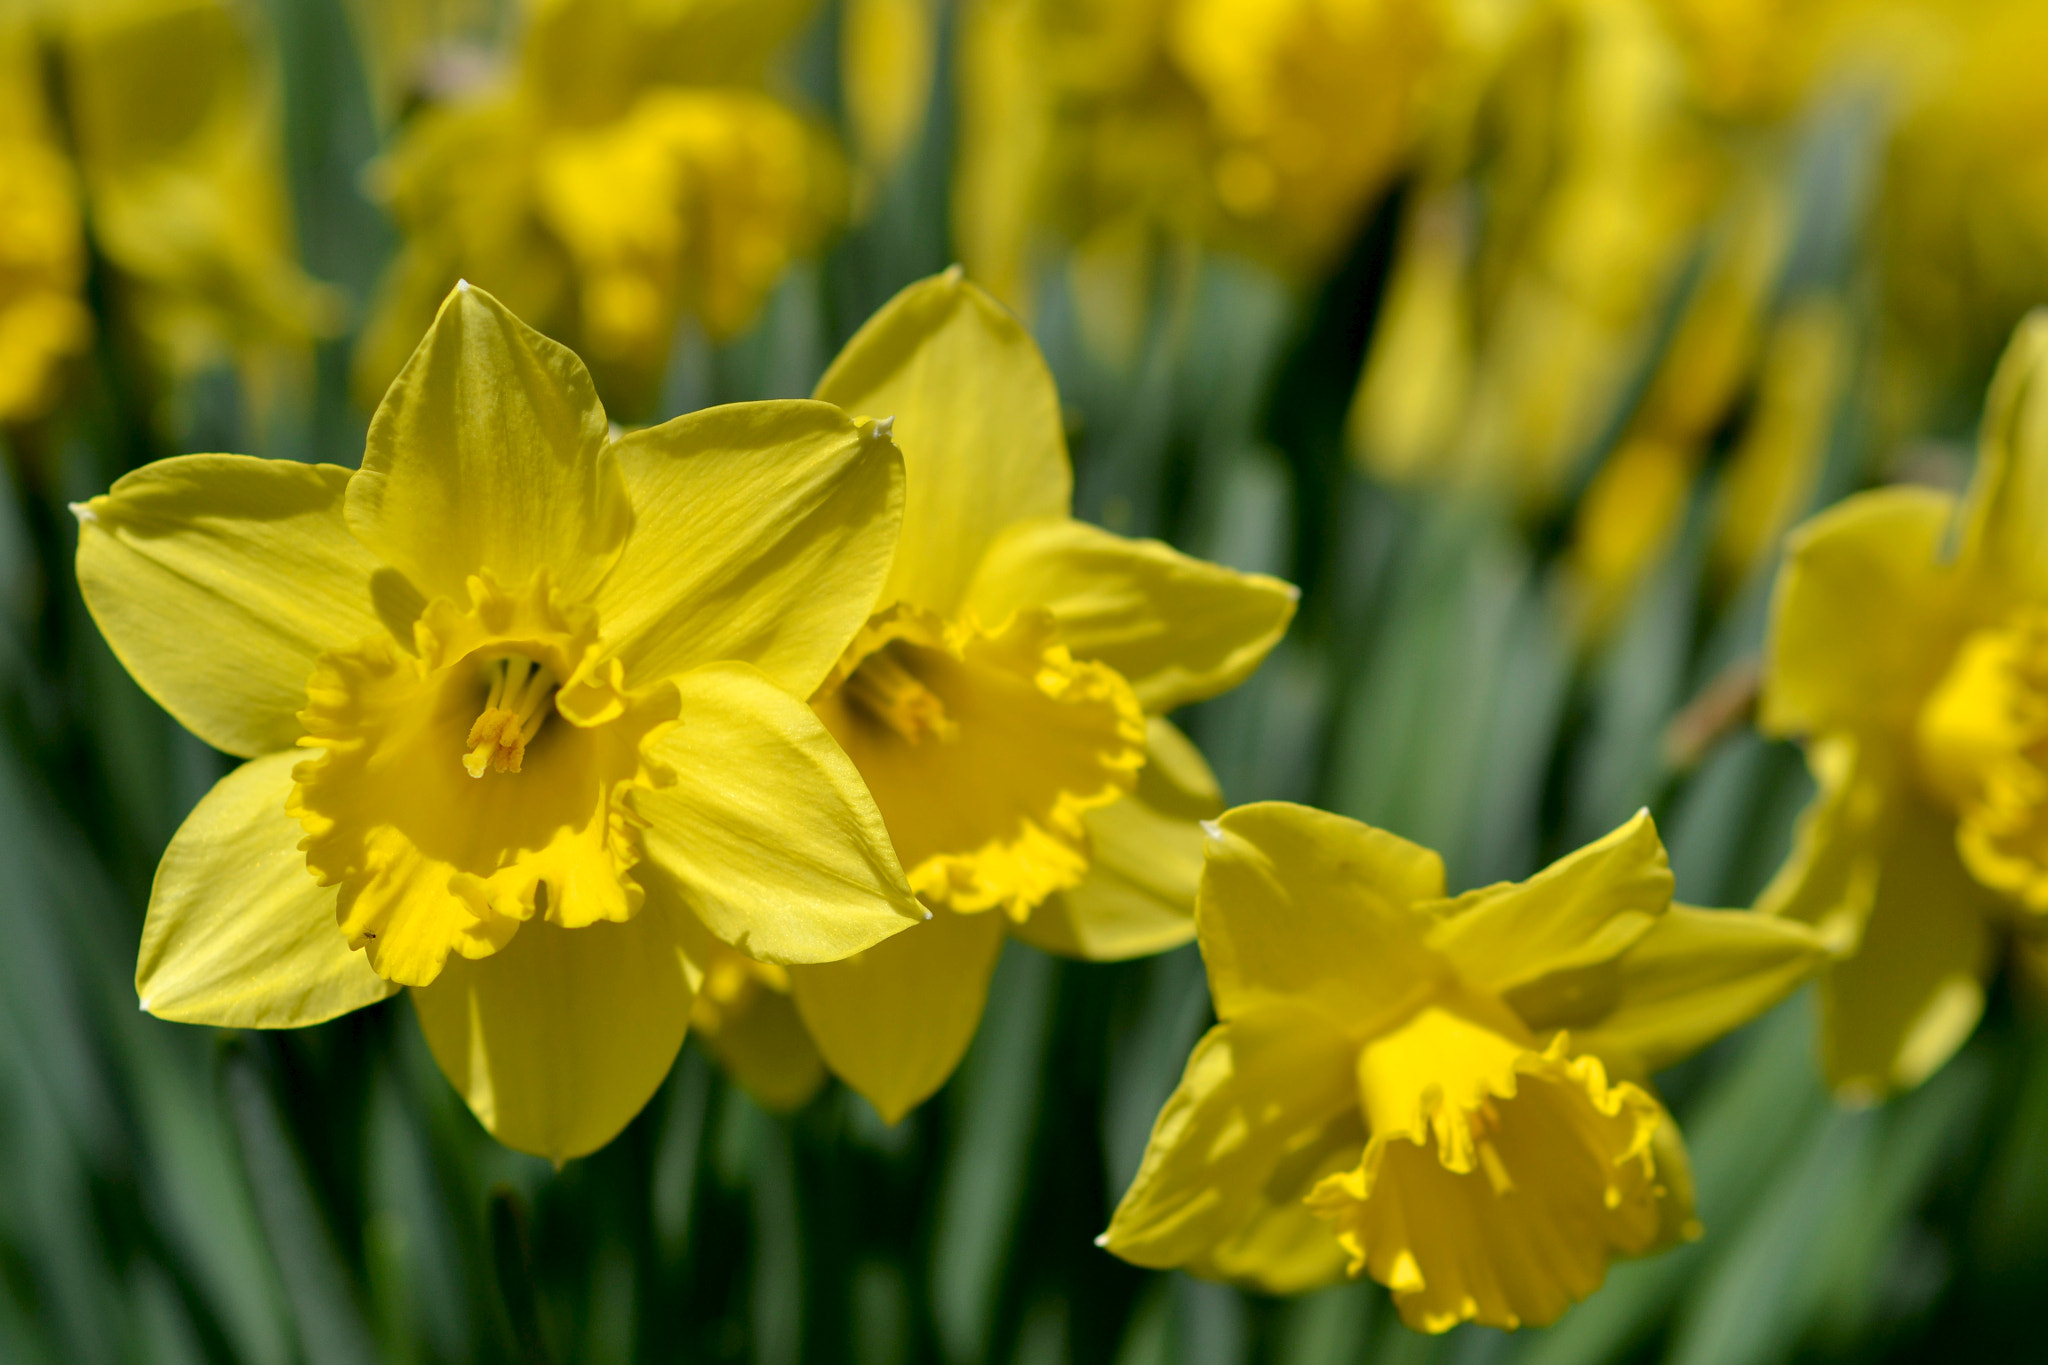 Photograph Daffodils by Michael Fey on 500px